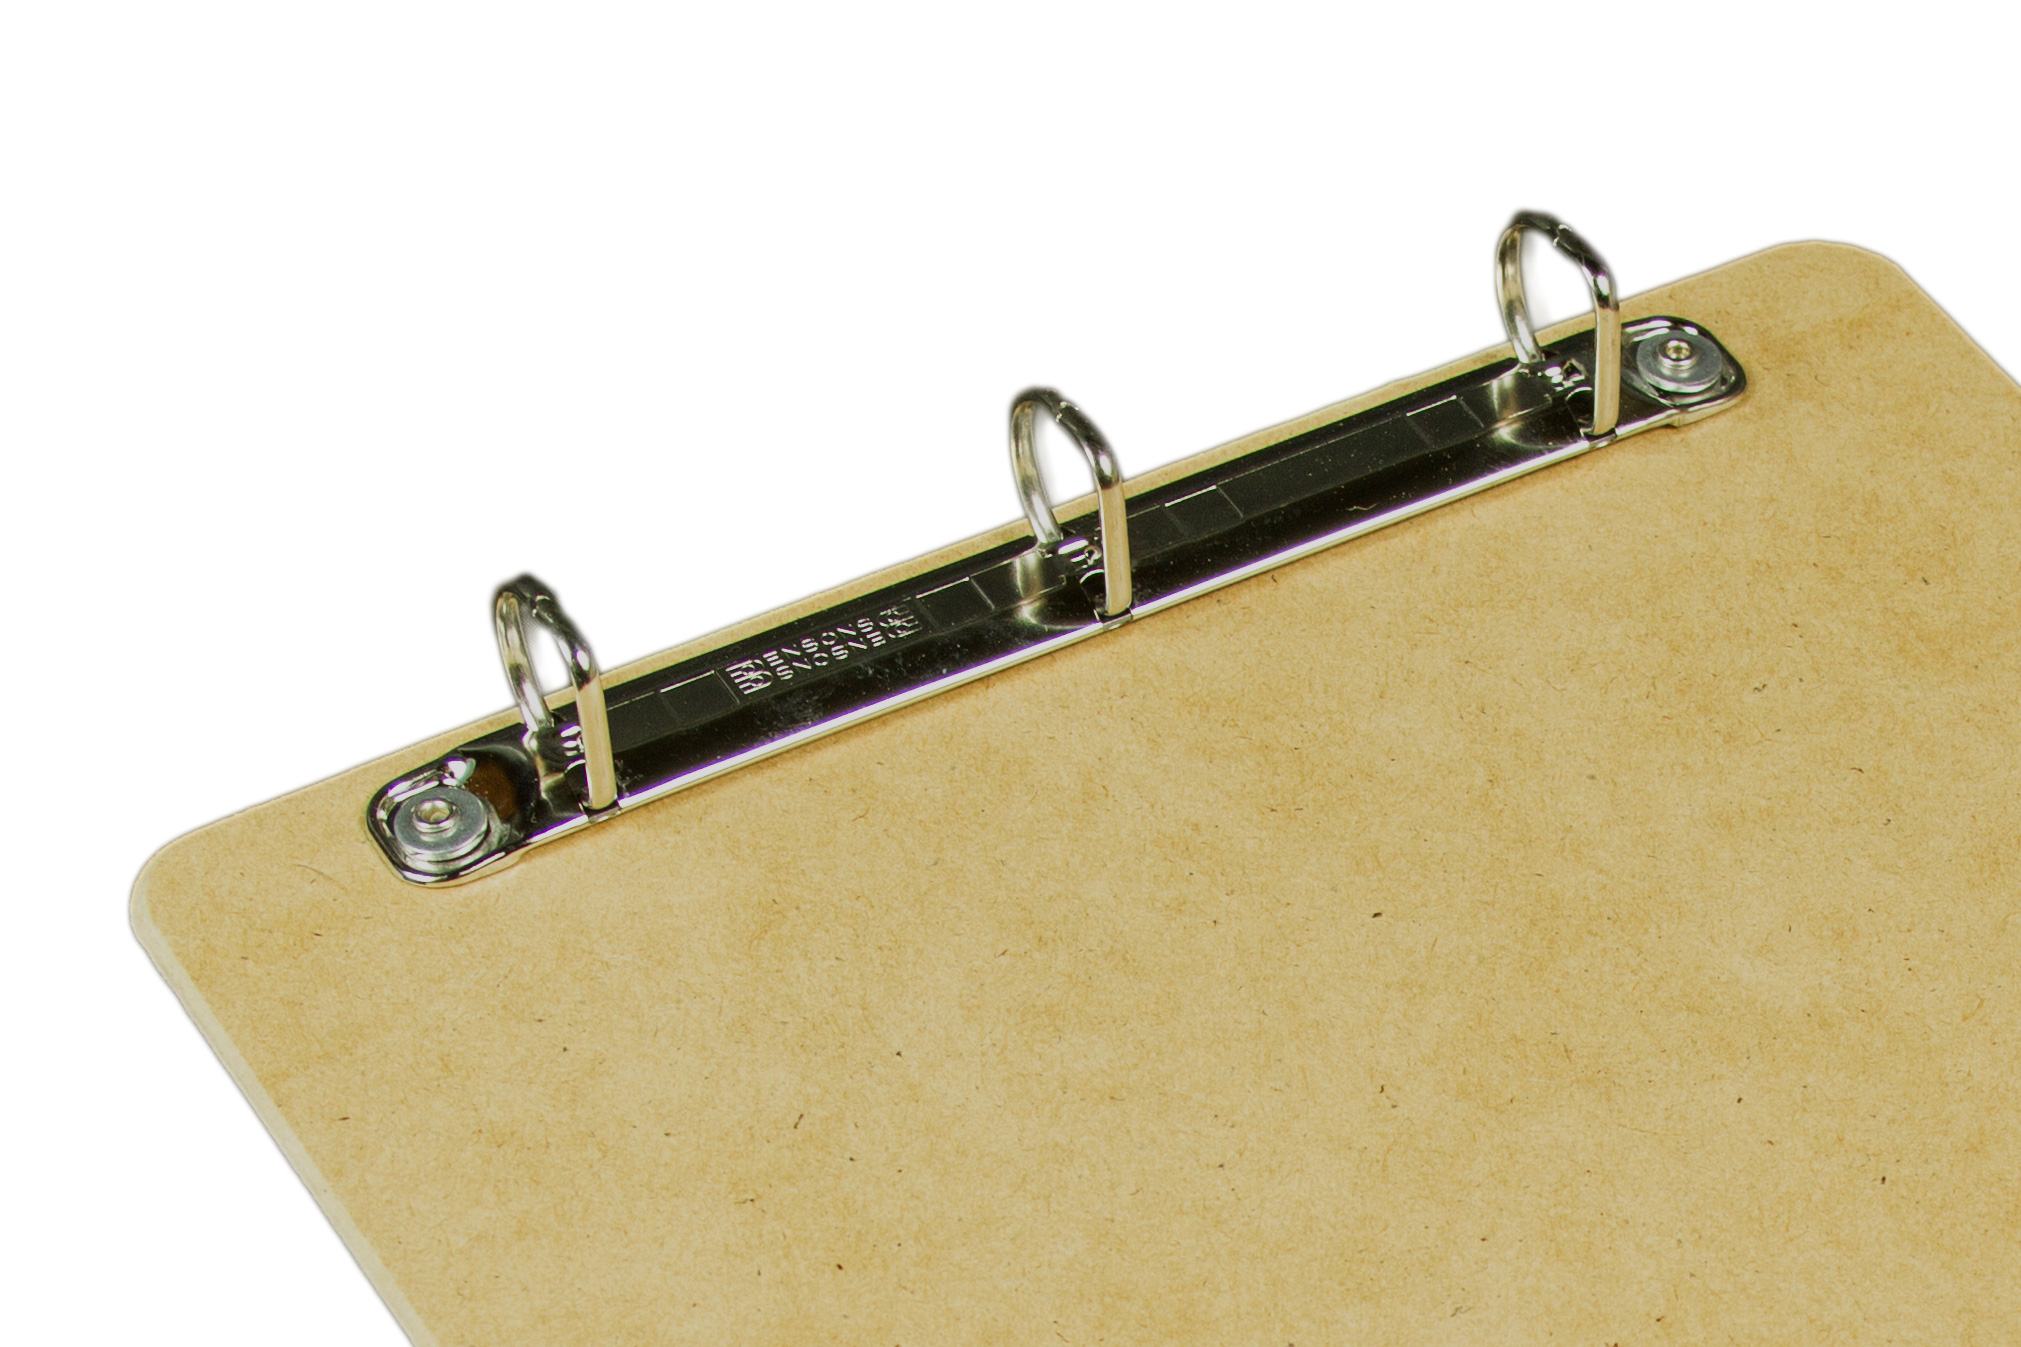 Clipboards with no clips, binders with no covers, ringboard with 3 rings